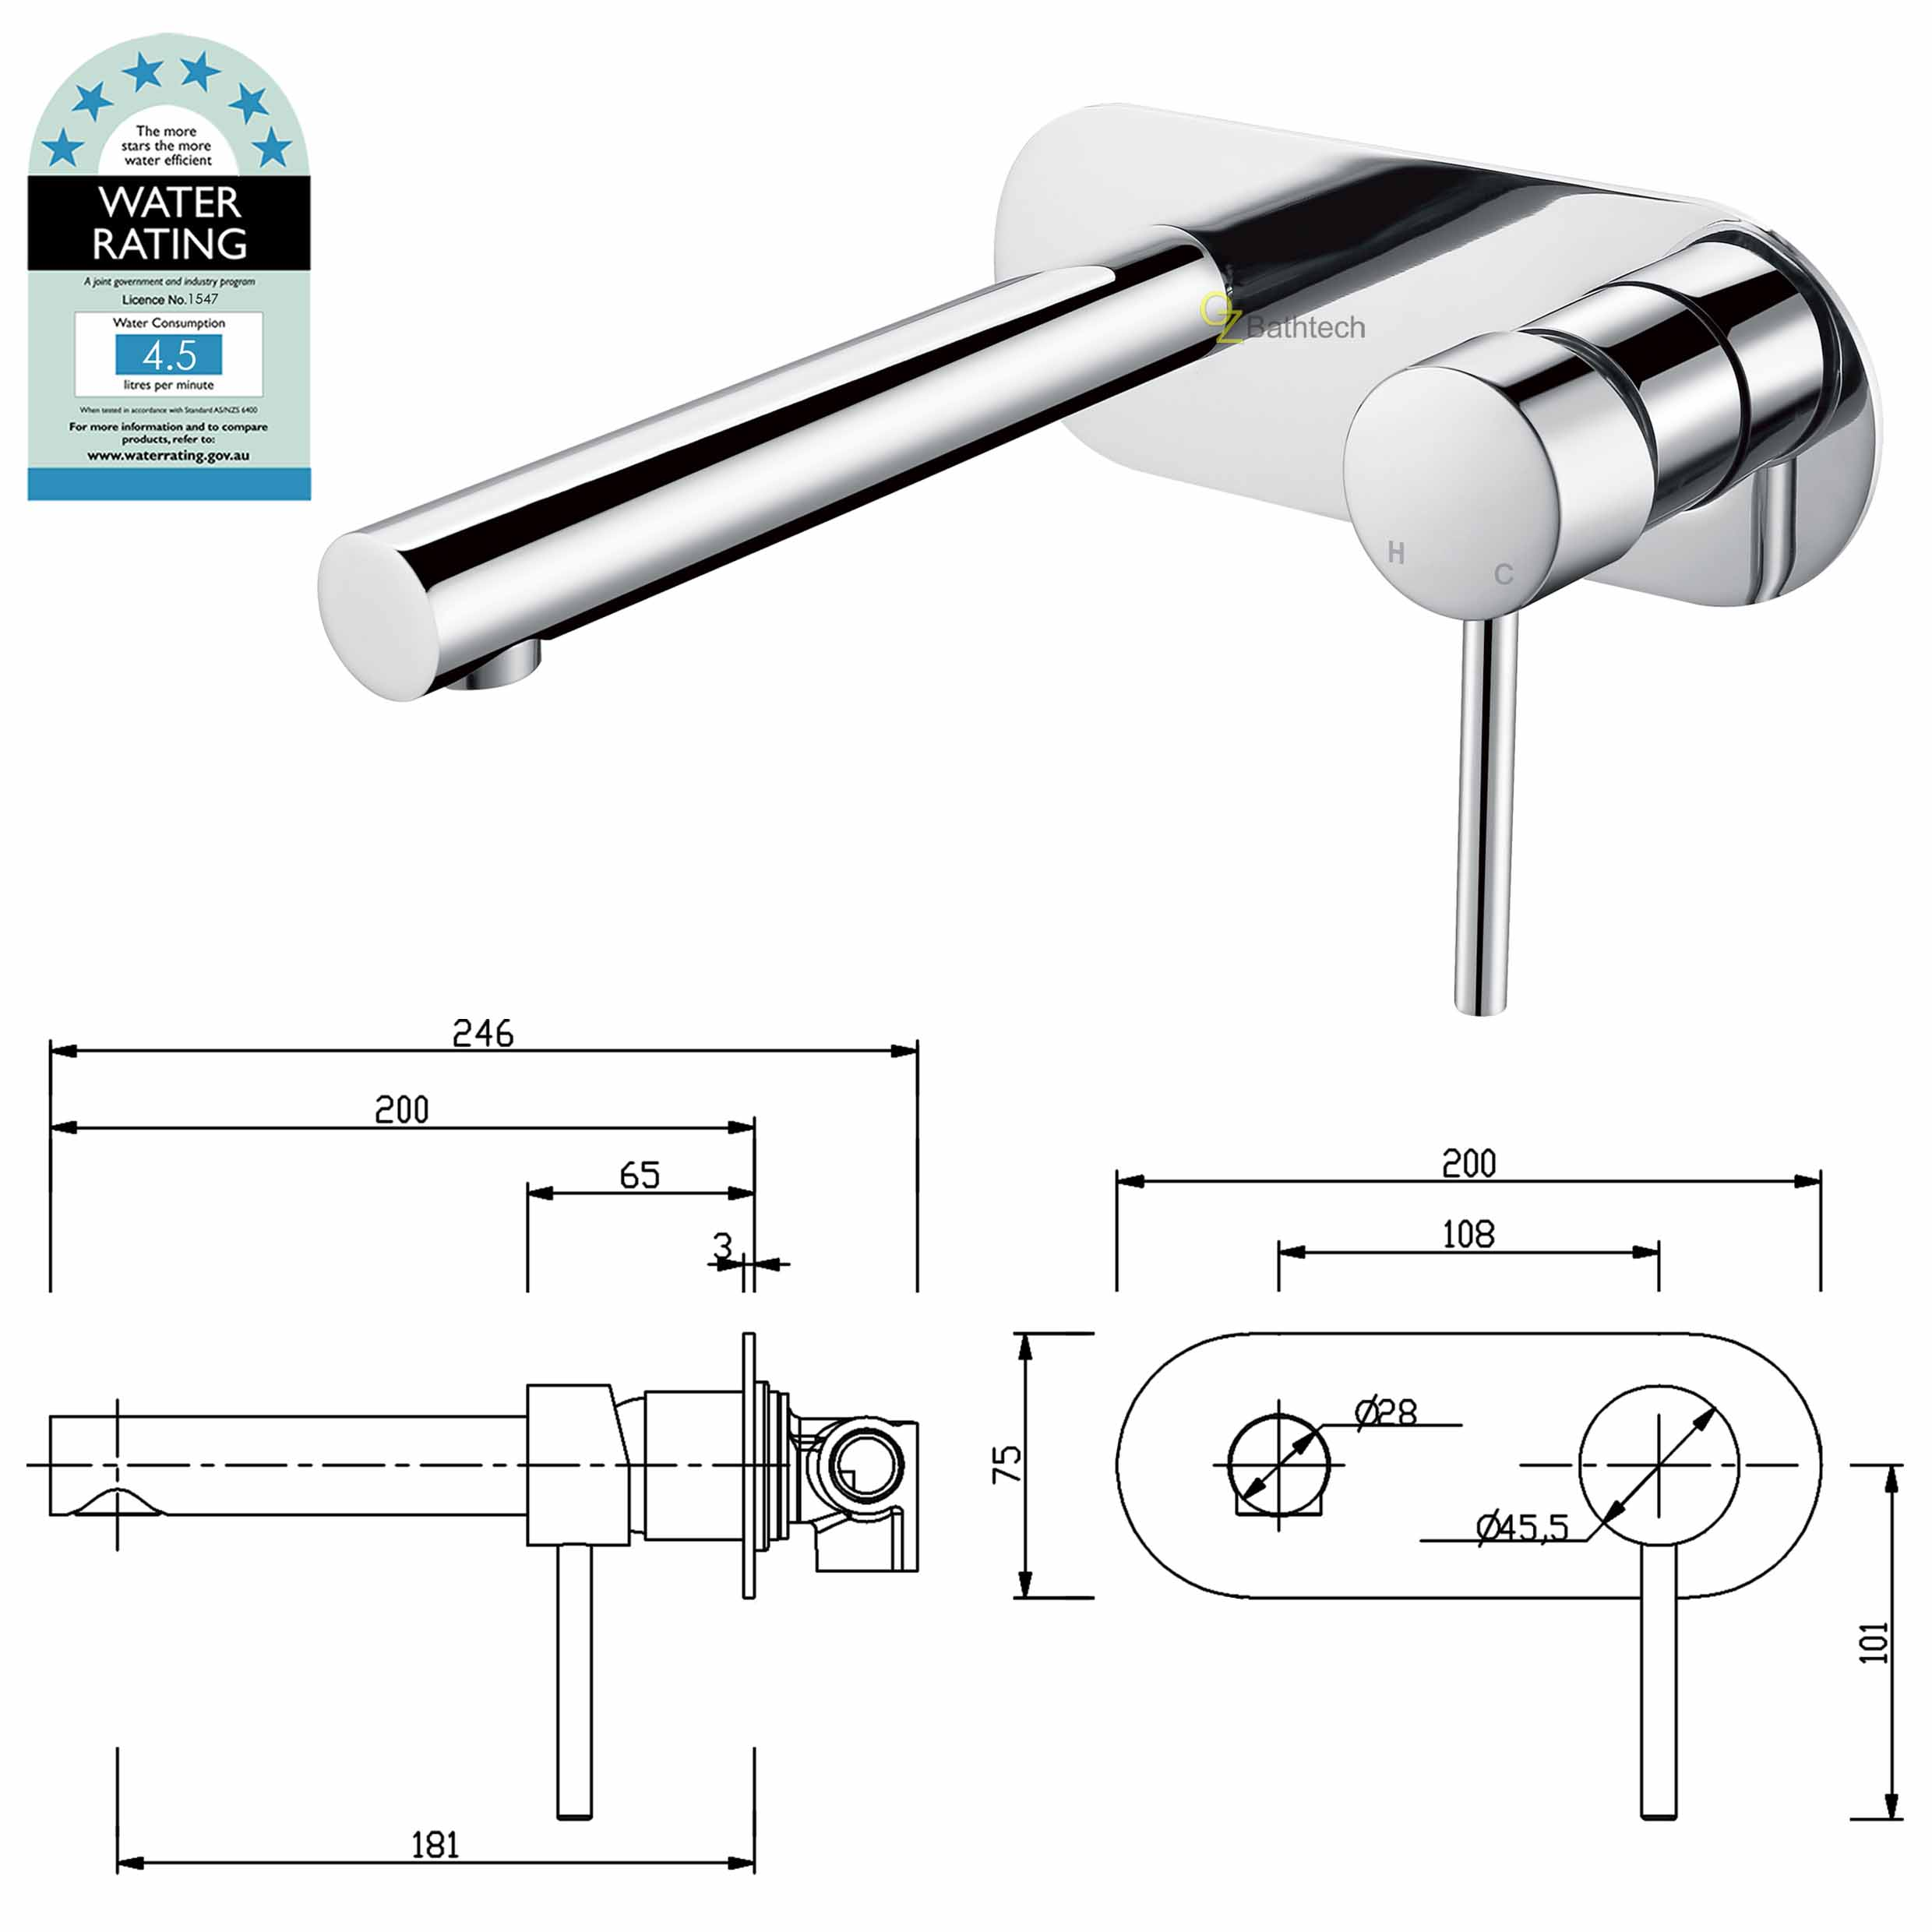 Spa Faucet Pedicure Spa Mixing Valve Bathtub Faucet Mixer: Black Chrome Basin Sink Mixer Kitchen Laundry Bathtub Spa